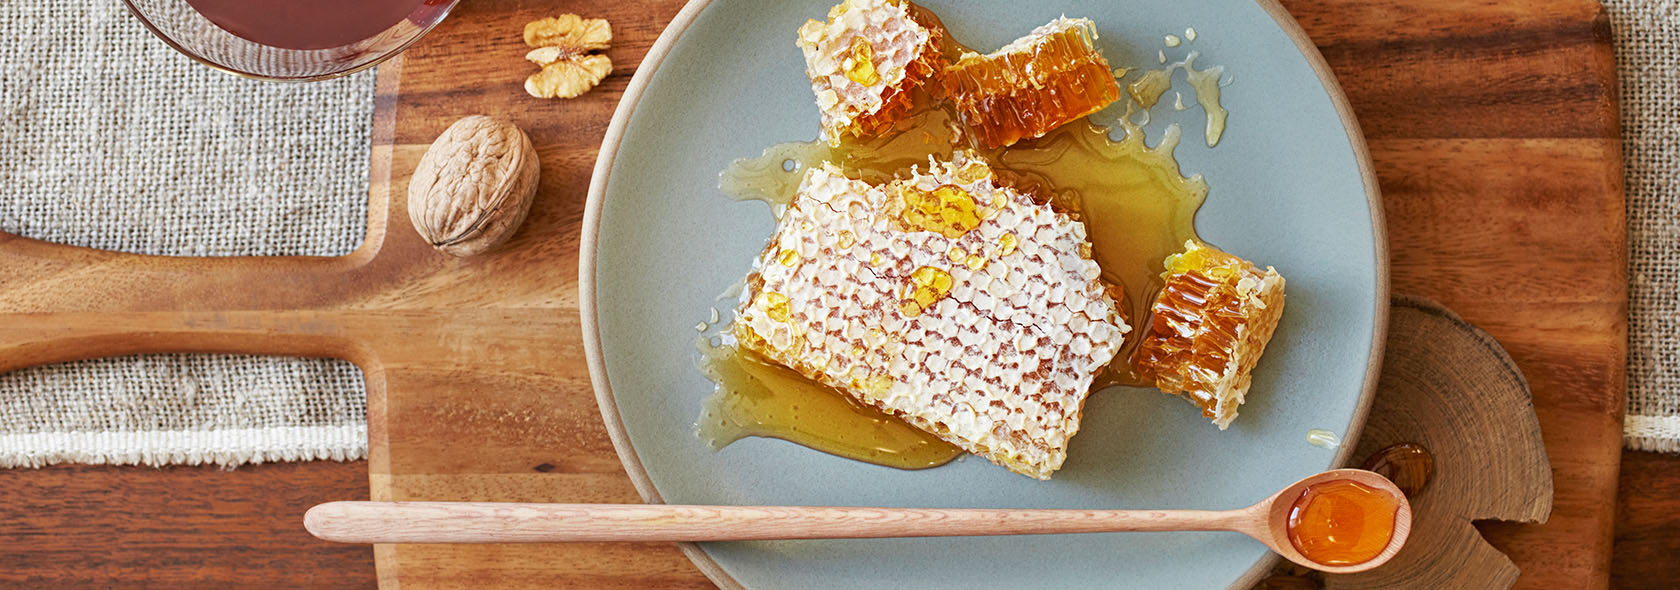 how to keep beeswax soft